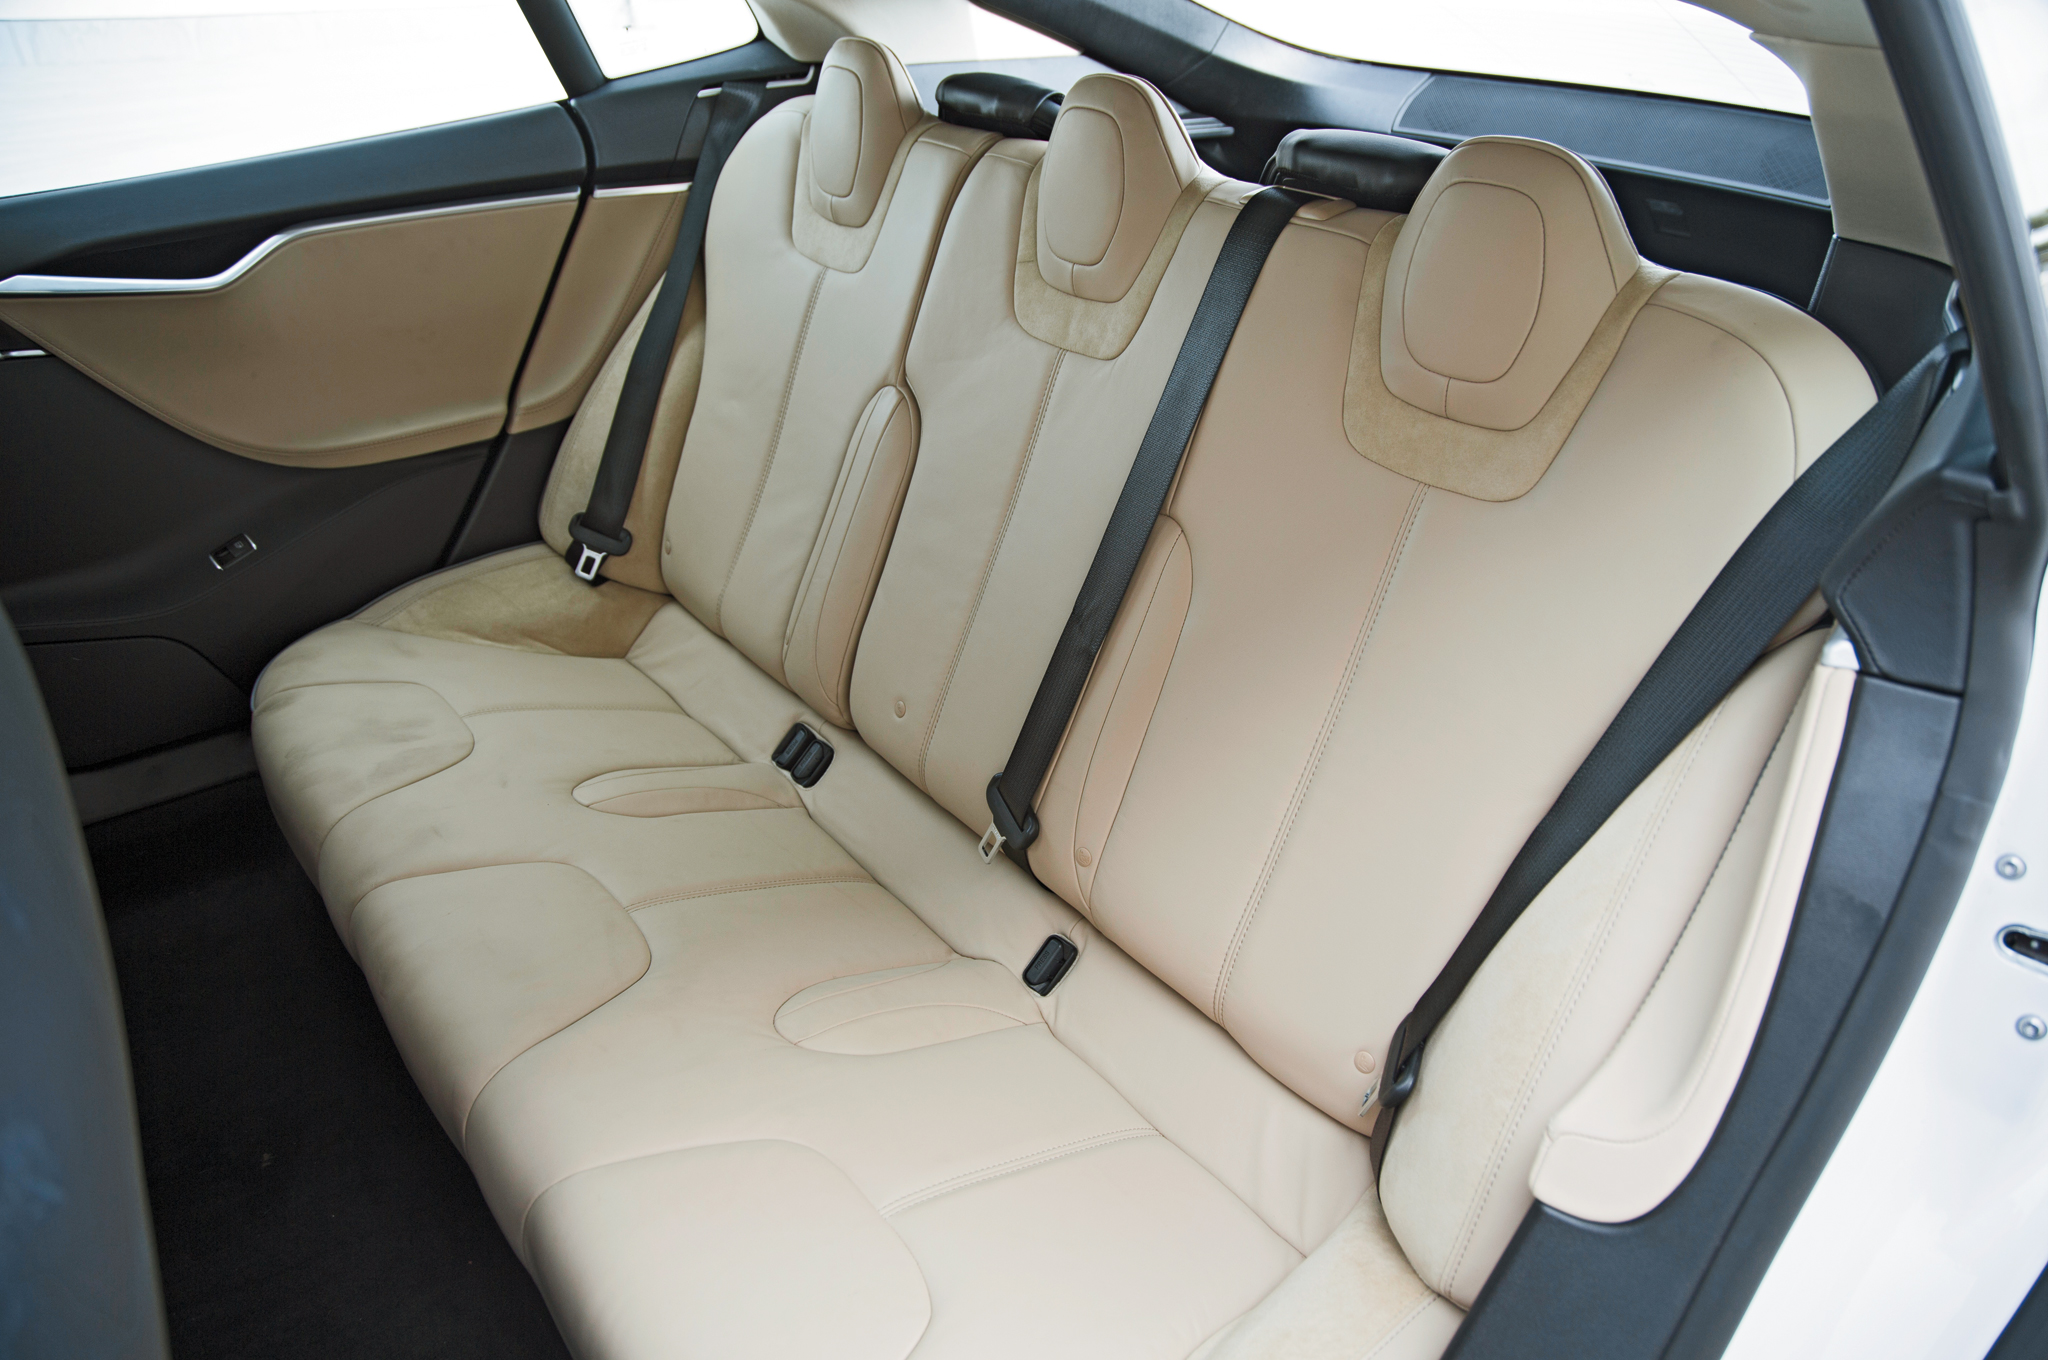 2013-tesla-model-s-rear-interior-seats.jpg